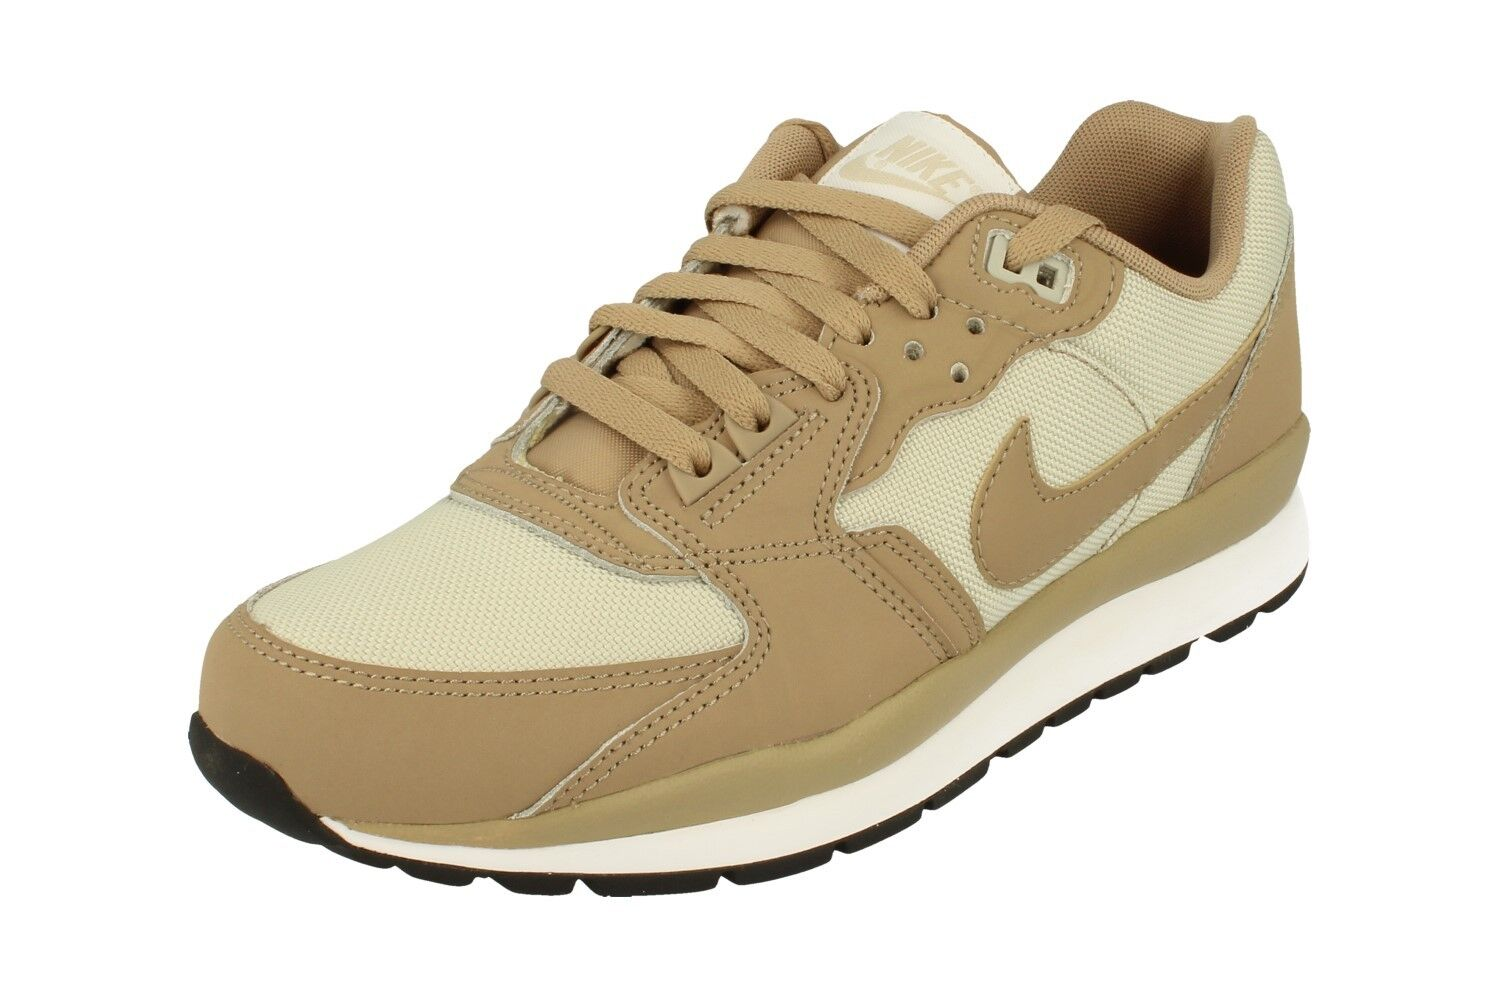 Nike Air Windrunner Tr Mens Running Trainers 317754 Sneakers Shoes 200 Cheap and beautiful fashion